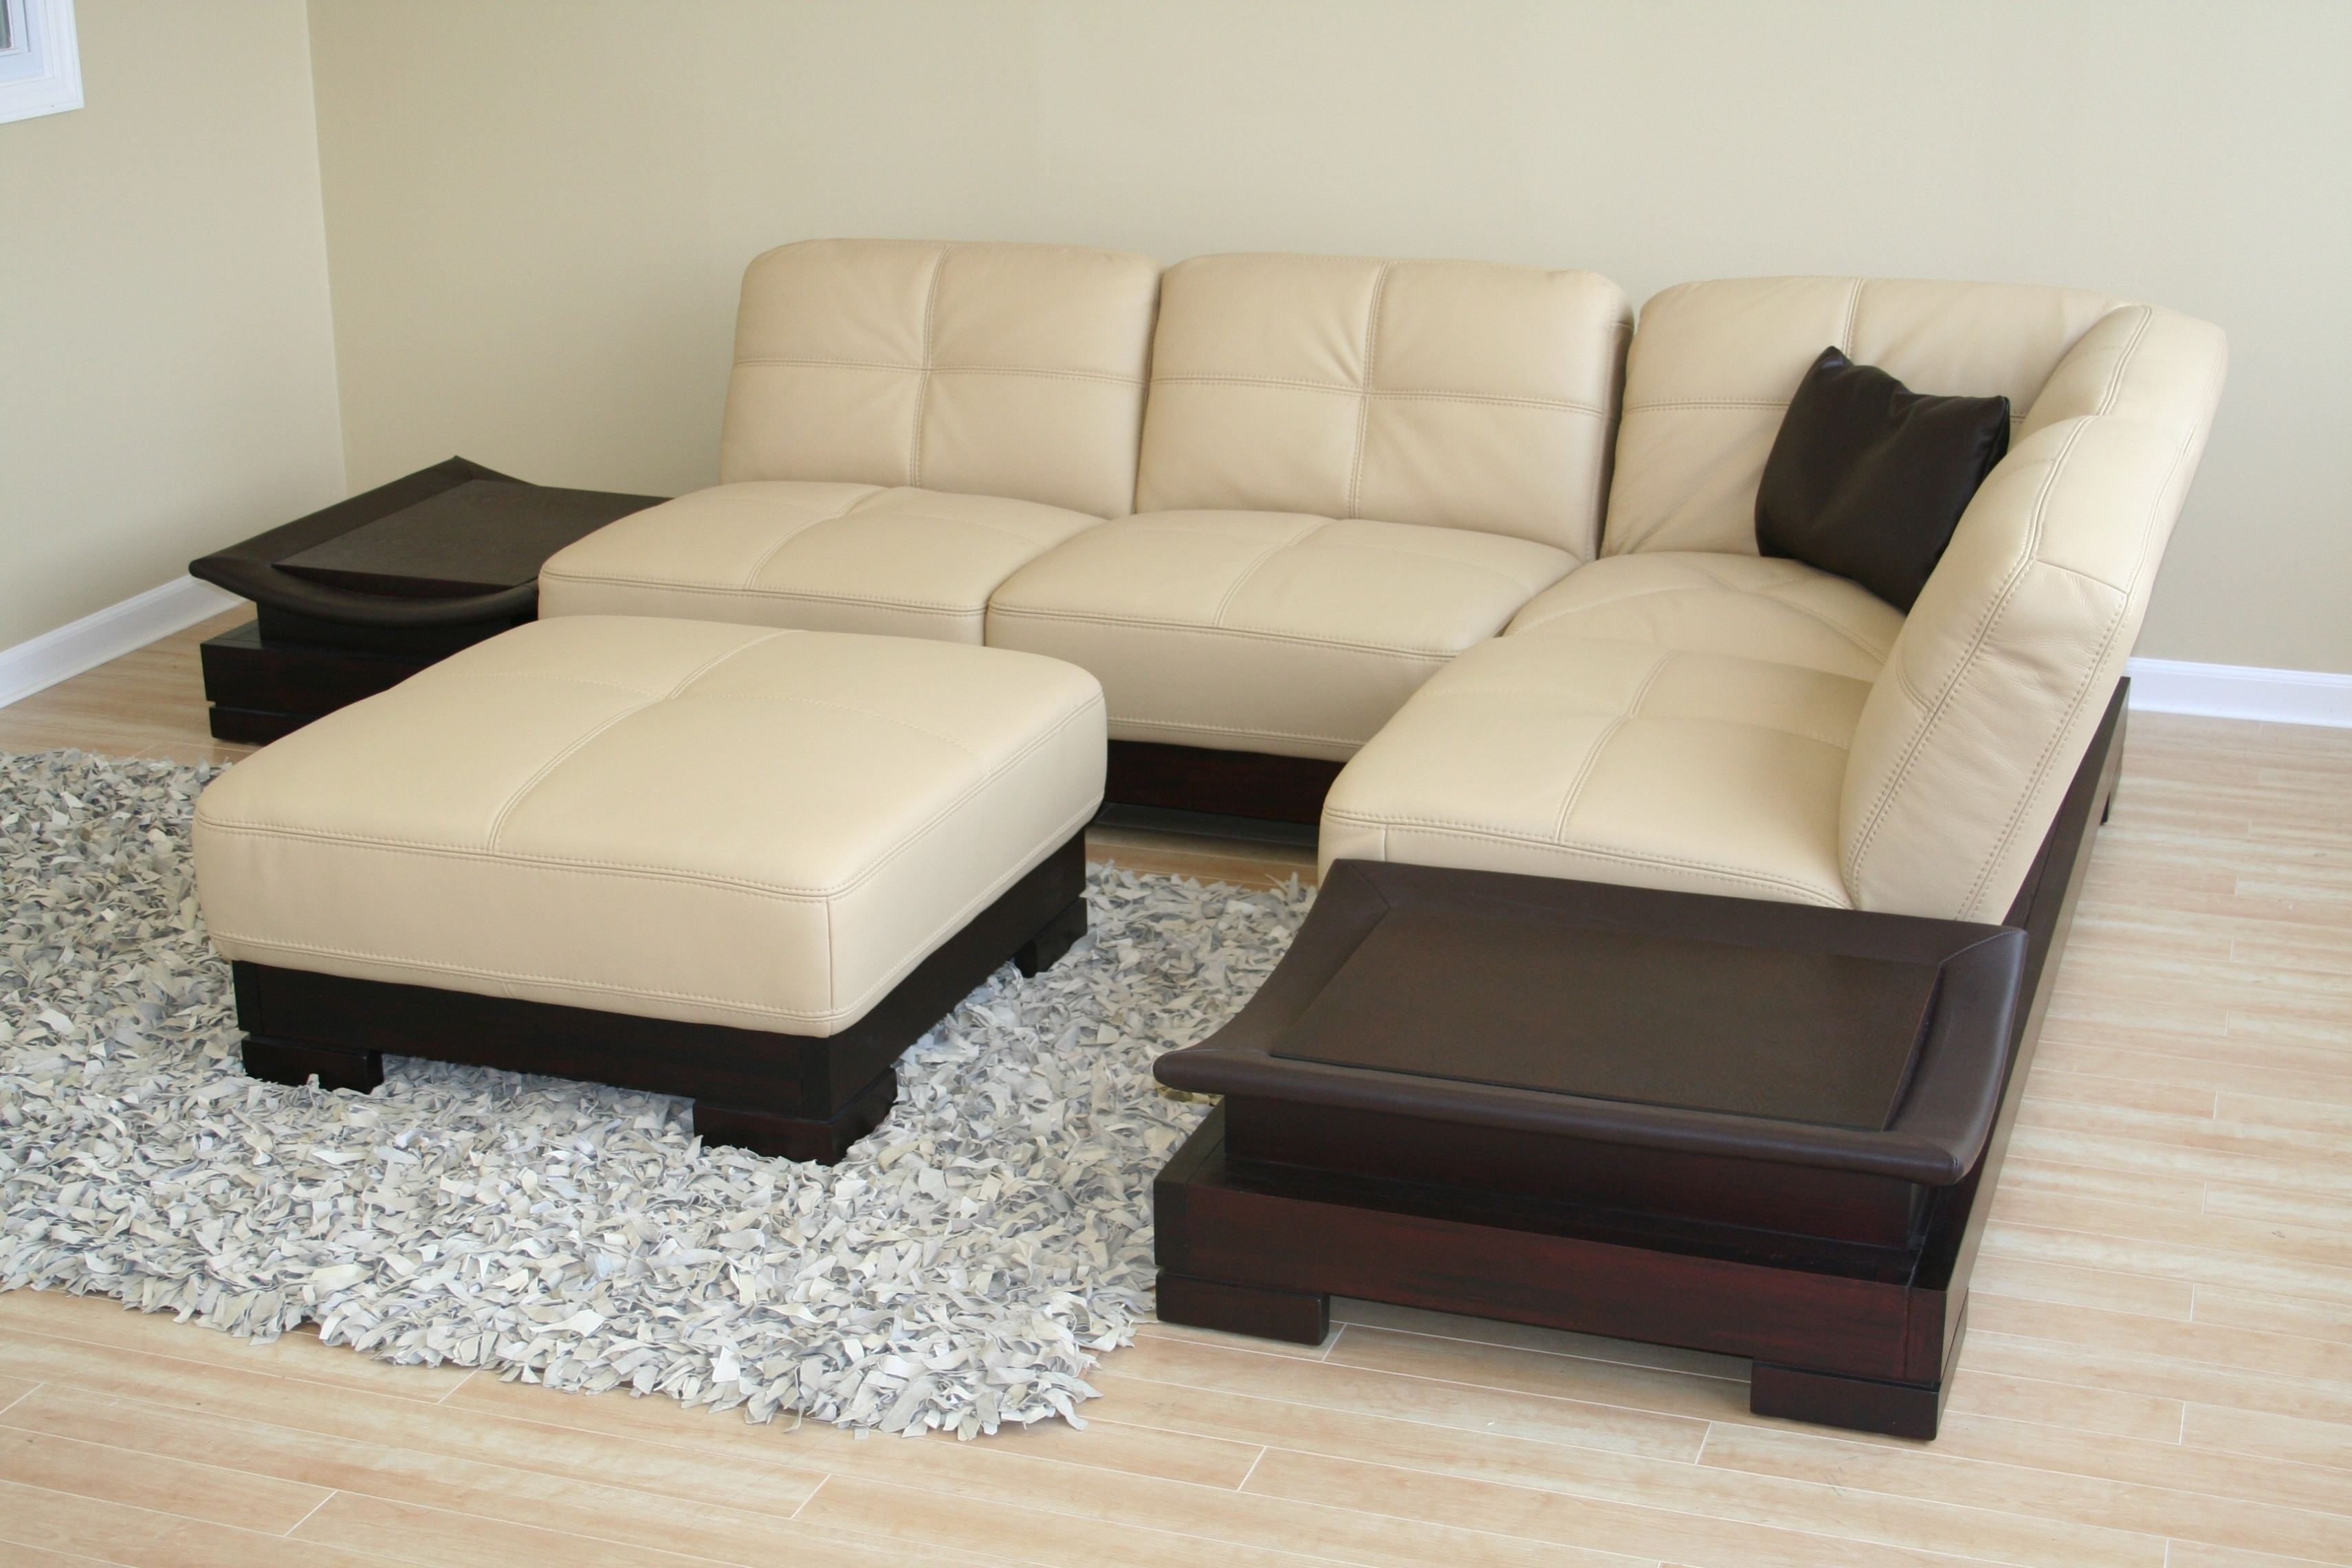 Small Modular Sofas For Most Recently Released Living Room : Modular Sofas For Small Spaces Small Sectional Sofas (Gallery 15 of 20)